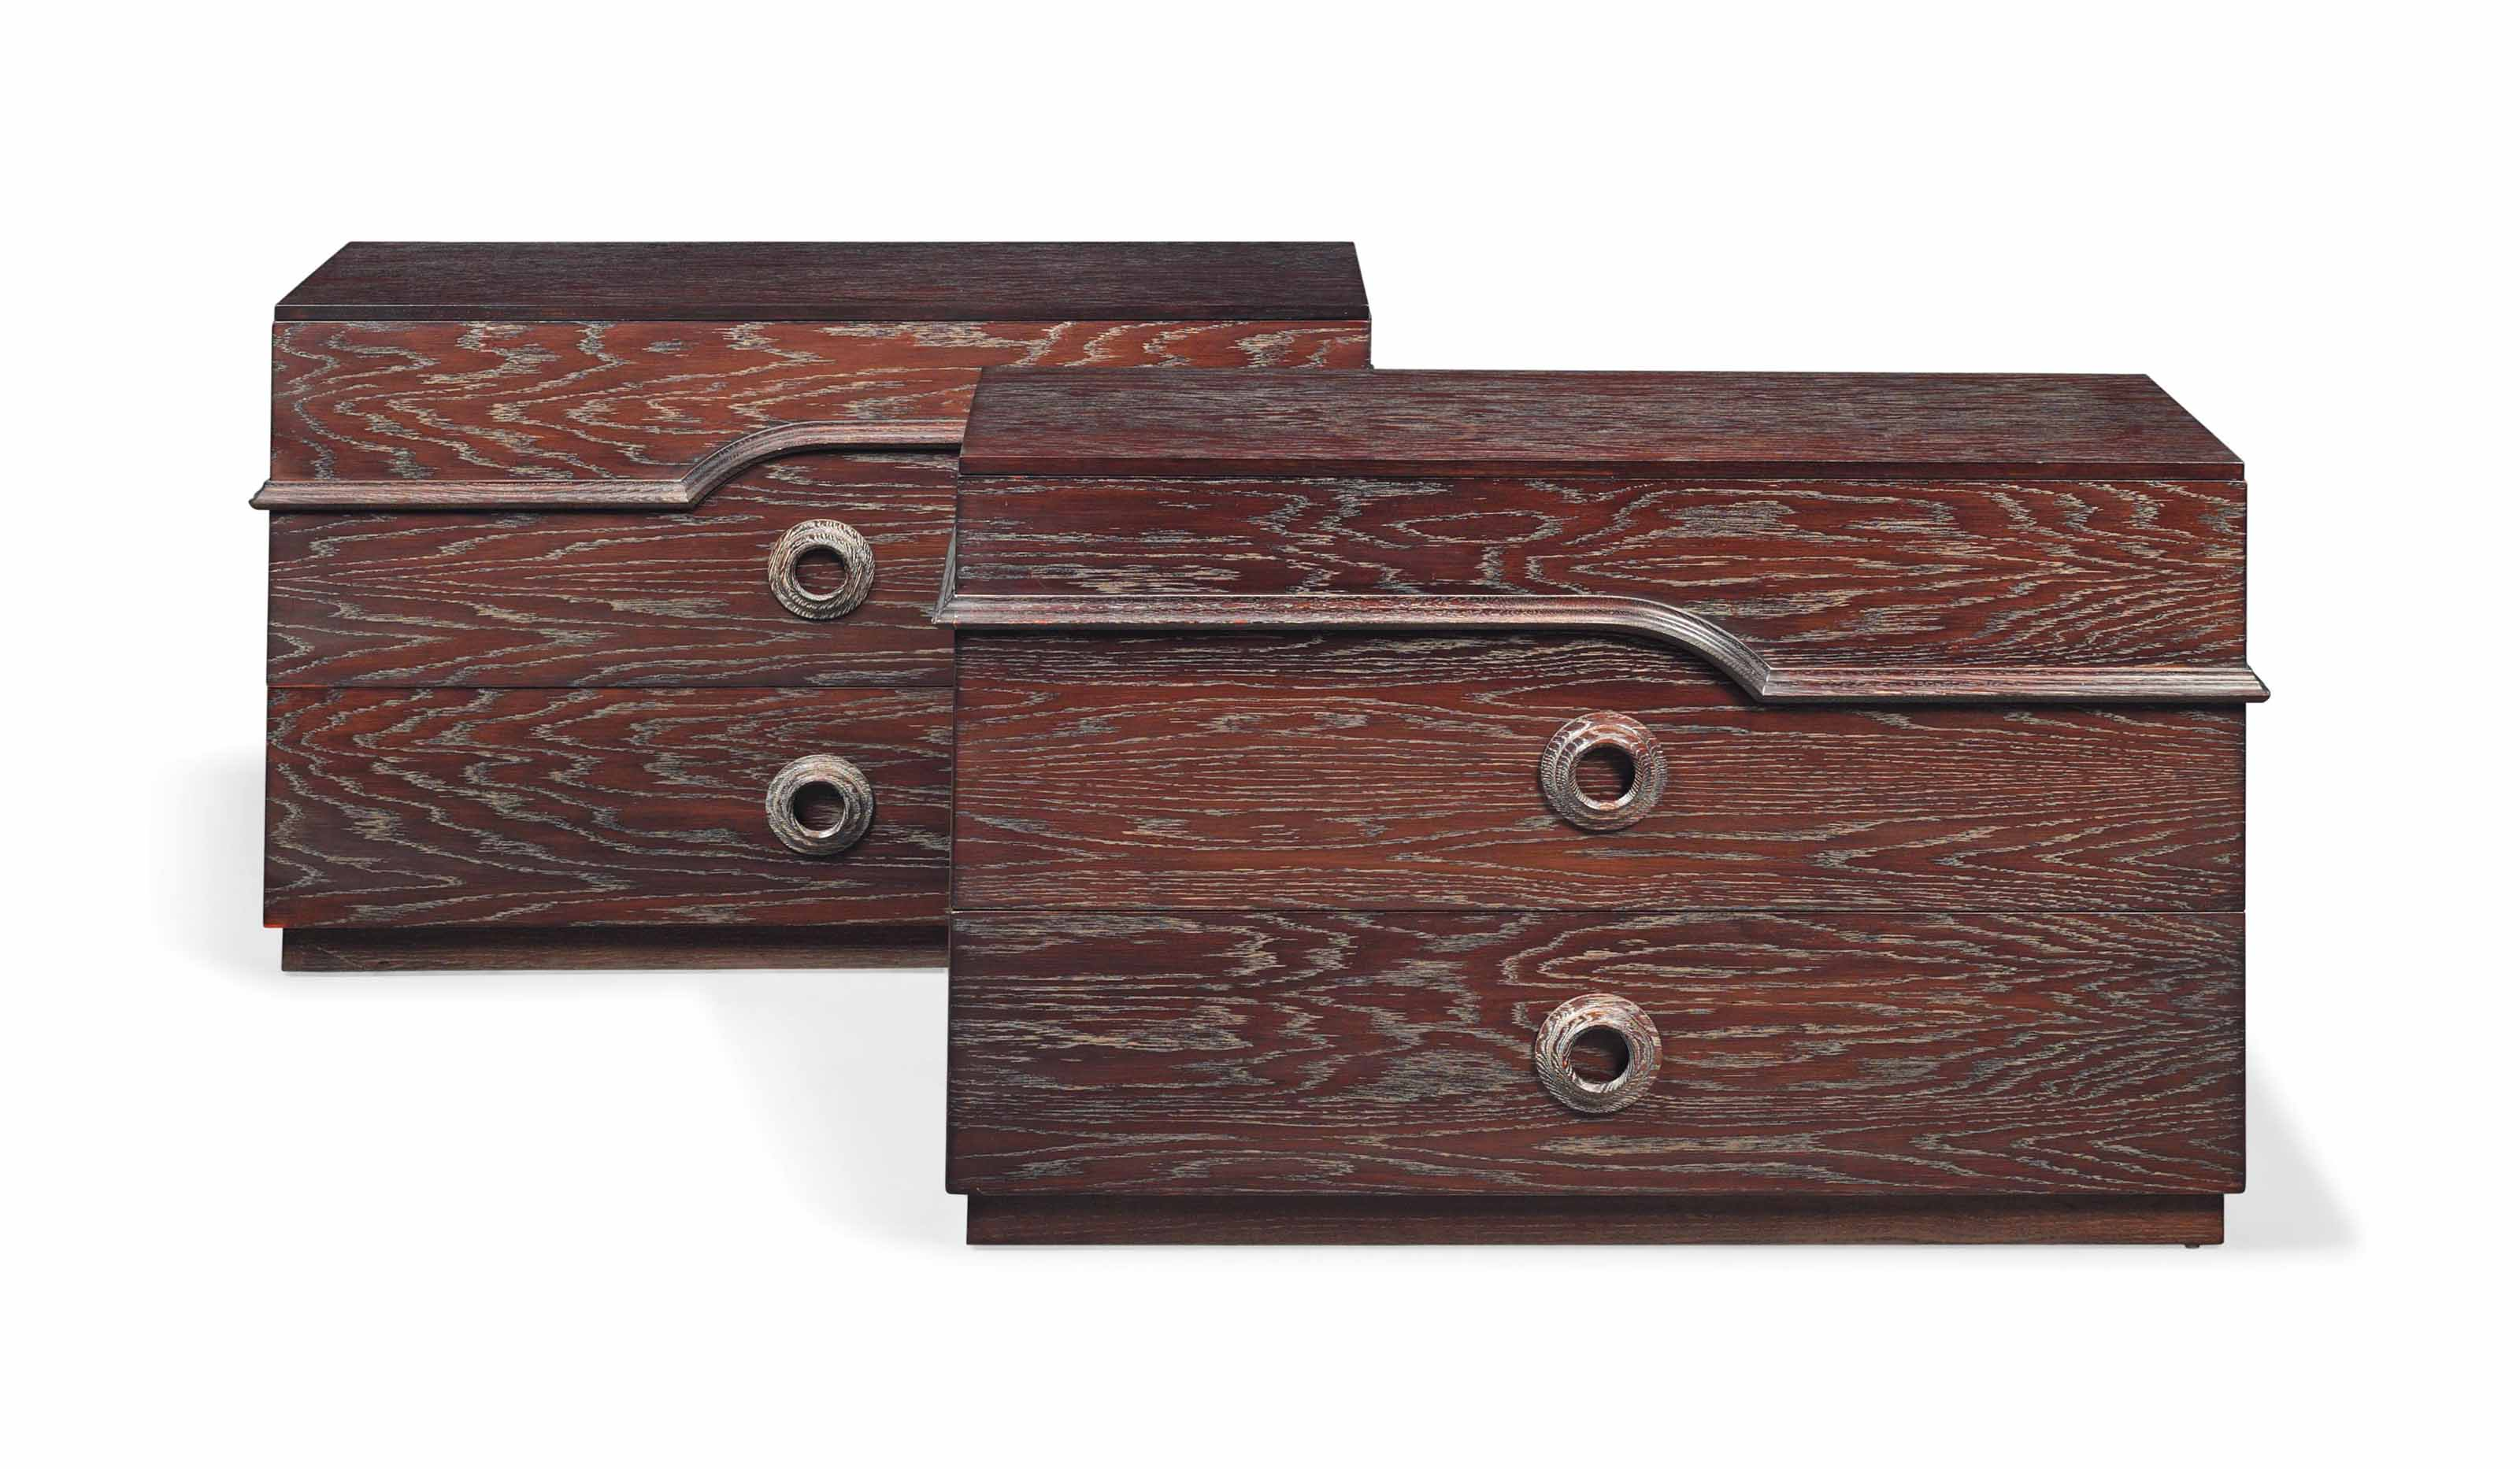 A PAIR OF JAMES MONT (1904-1978) CERUSE OAK CHEST OF DRAWERS